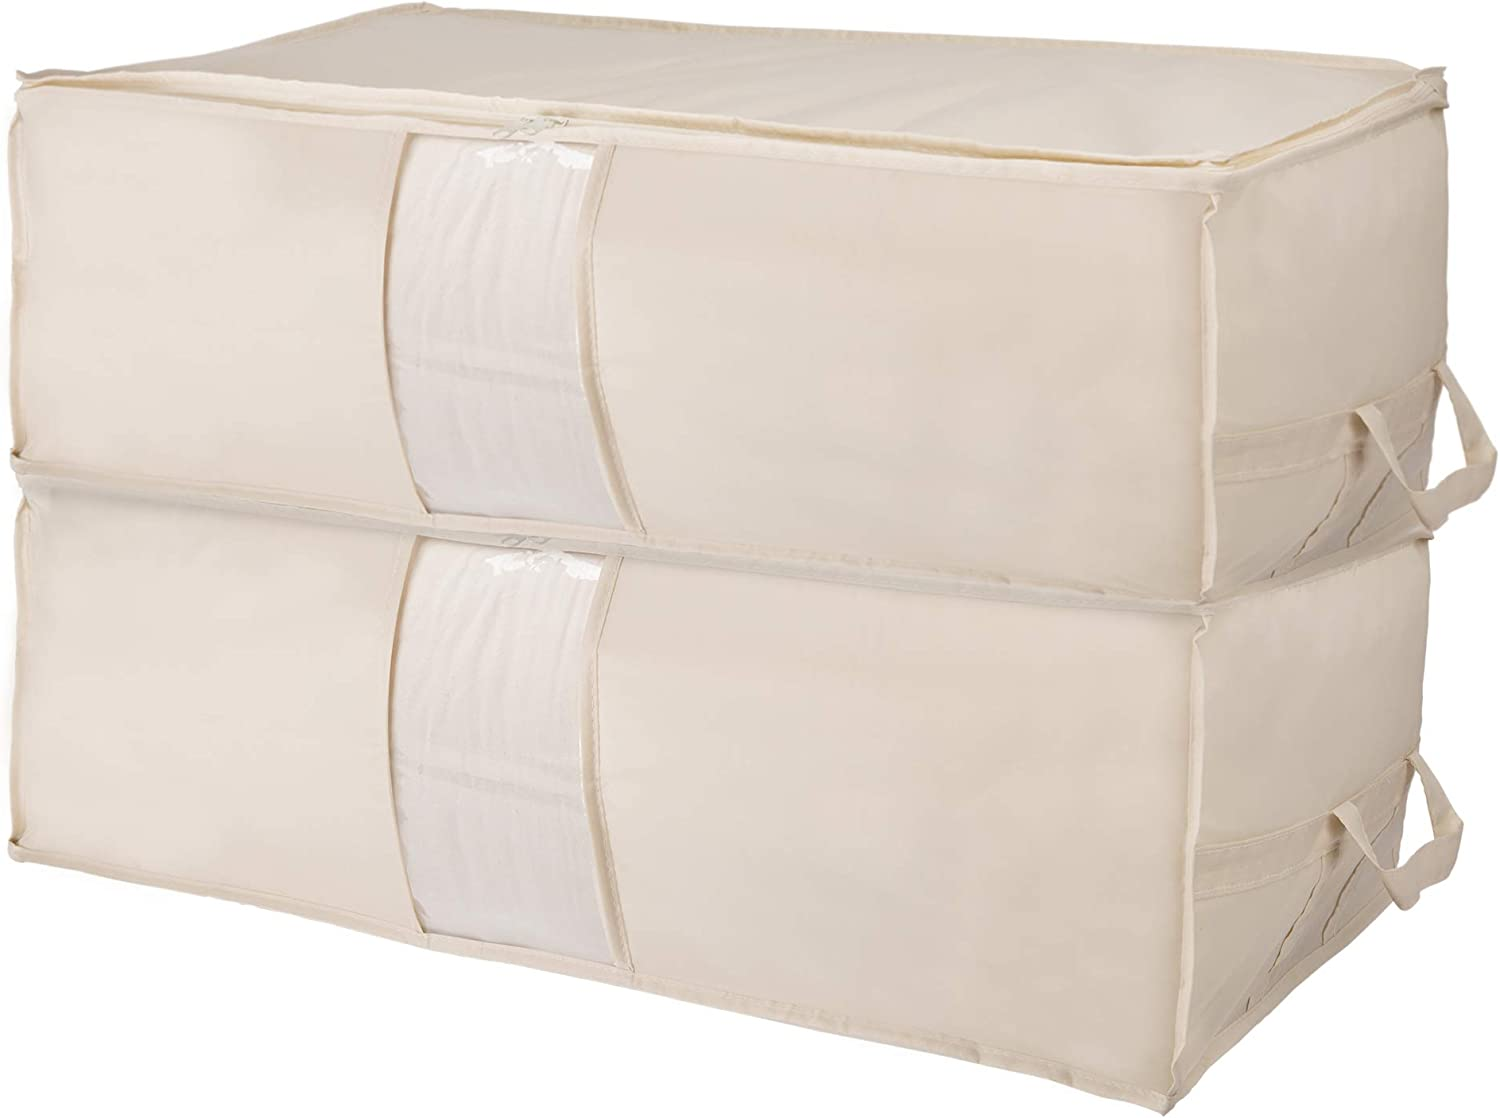 Surblue Clothing Storage Bags with Window Handl Clear Ranking TOP12 Reinforced Max 60% OFF